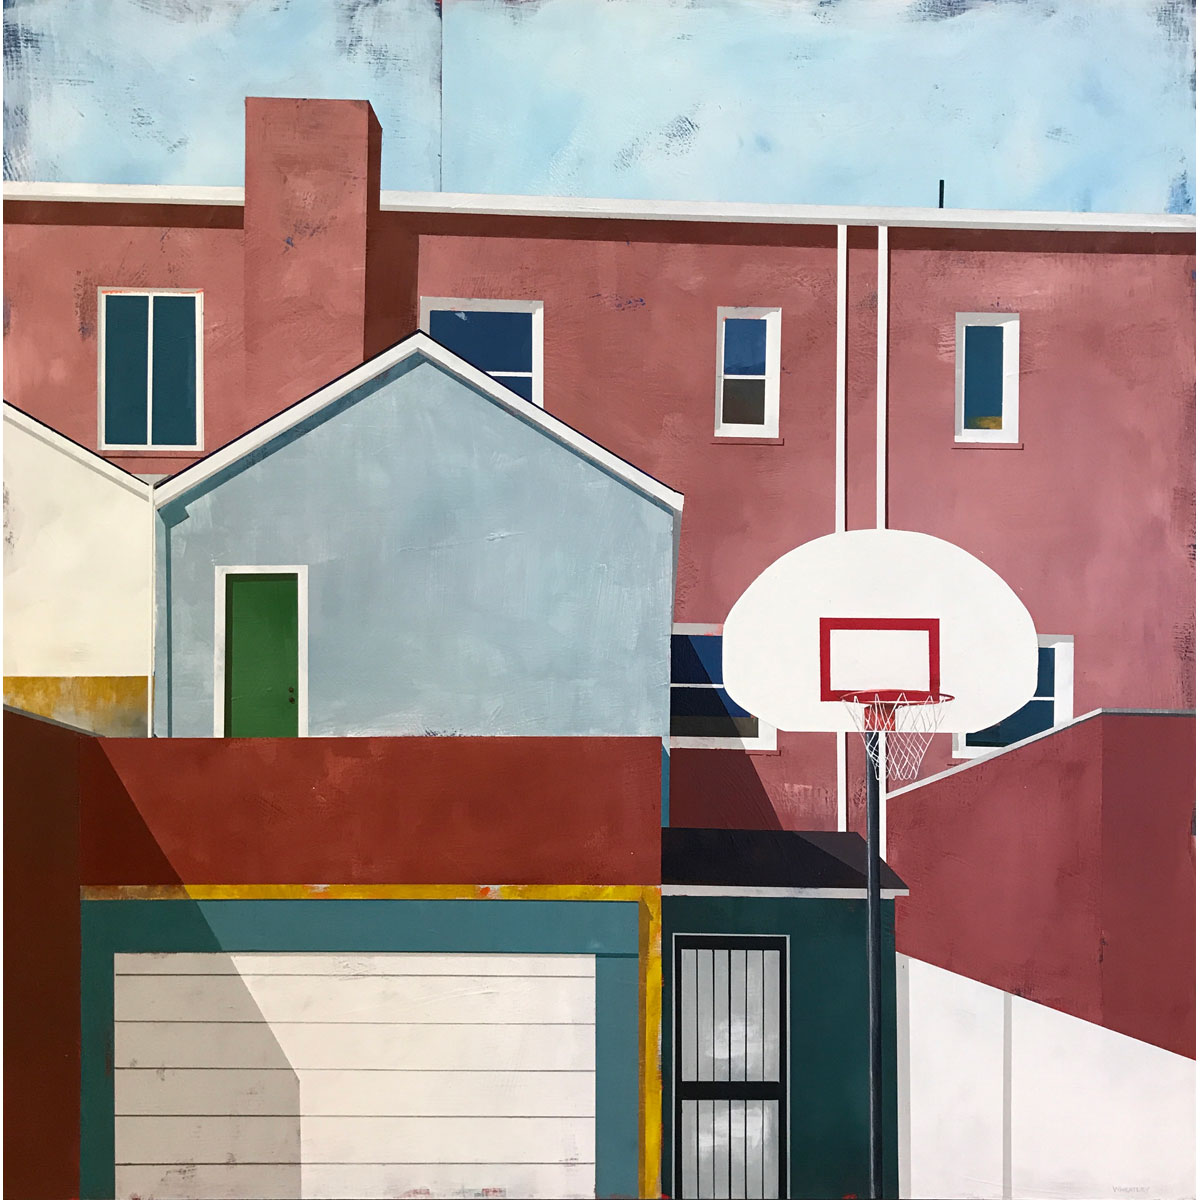 Alley Ball 1 by Justin Wheatley